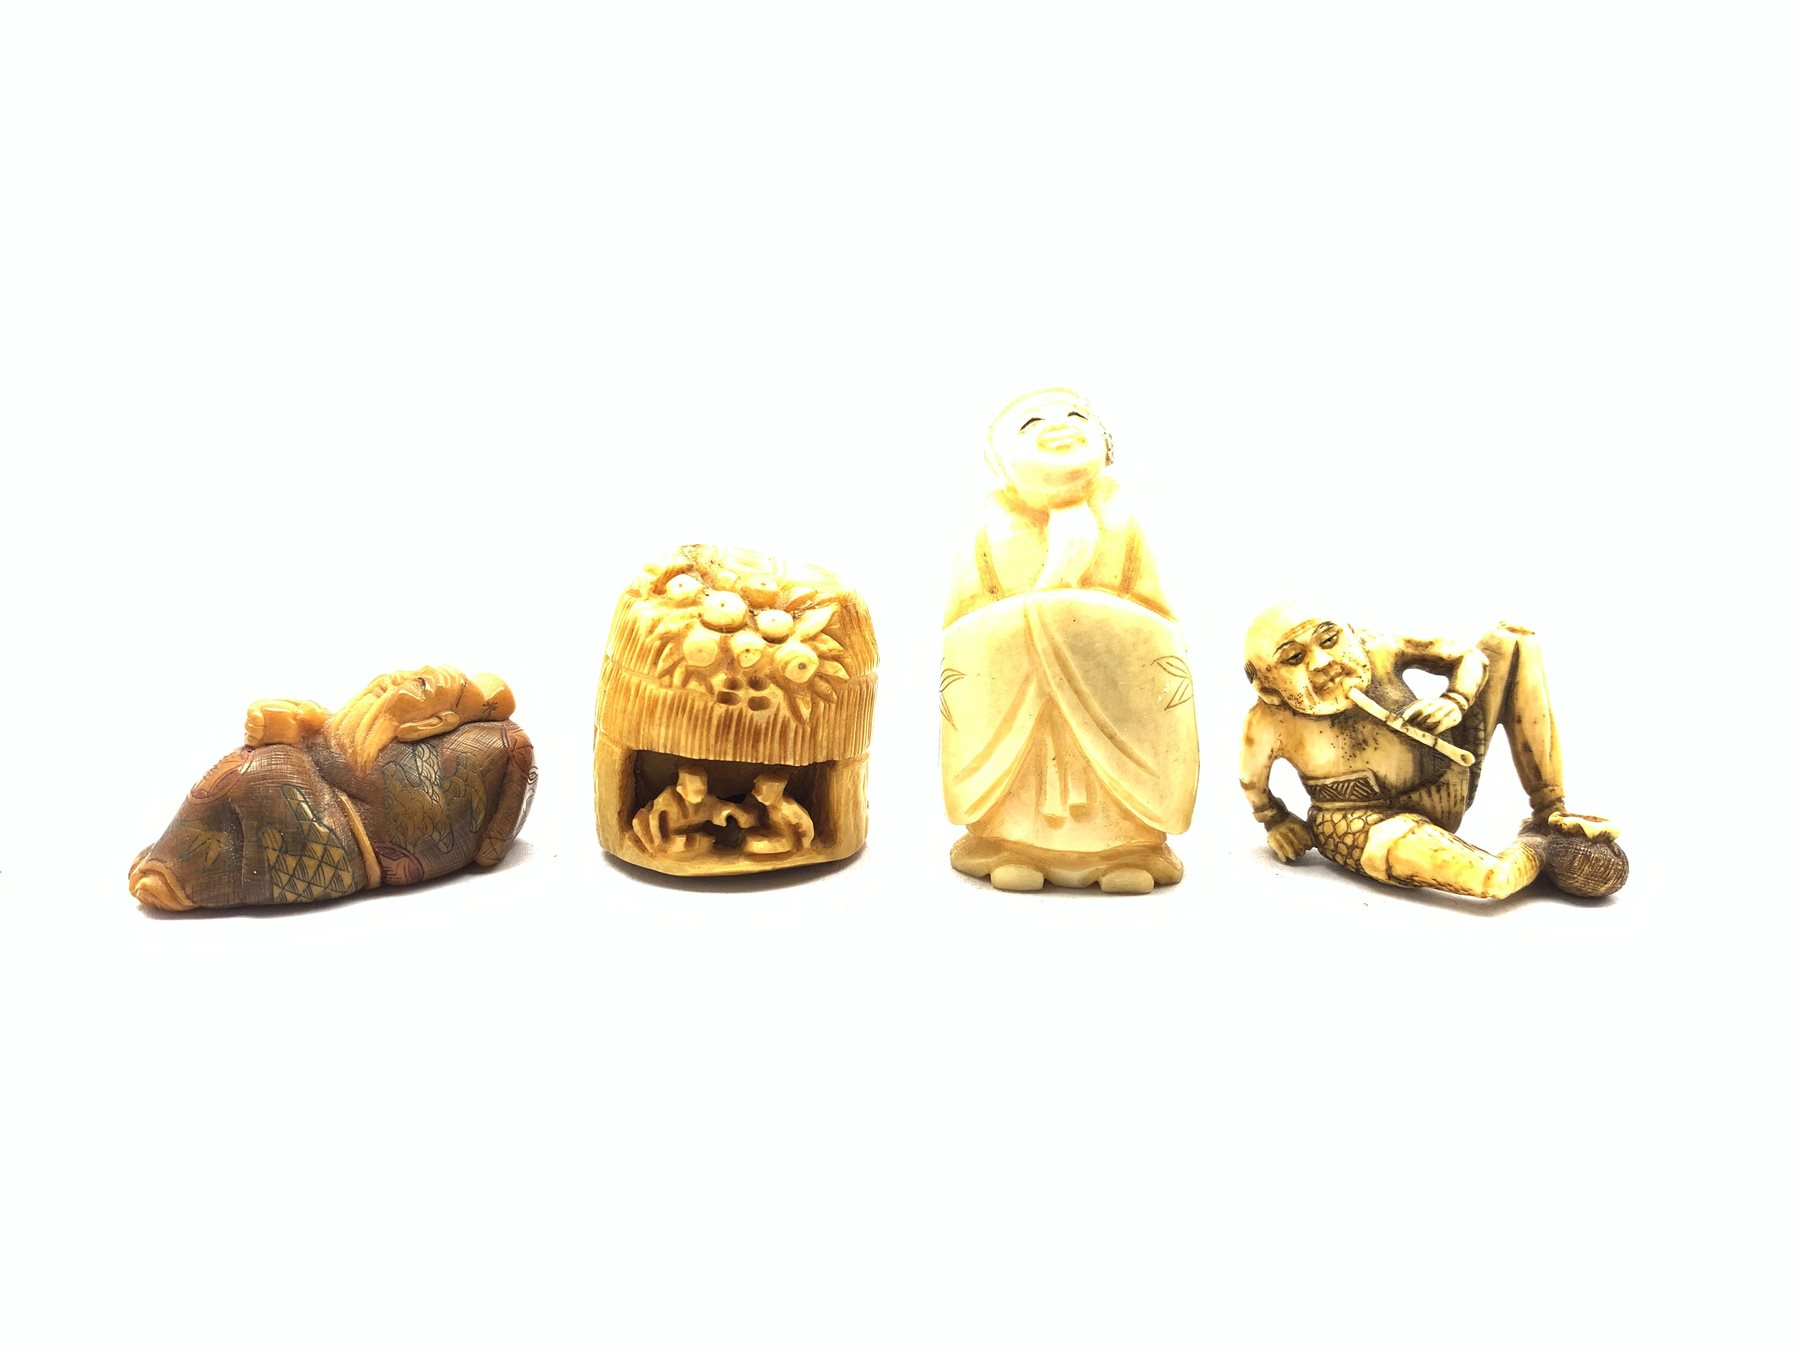 Group of early 20th century Japanese Netsukes comprising a carved ivory figure of a Scholar wearing